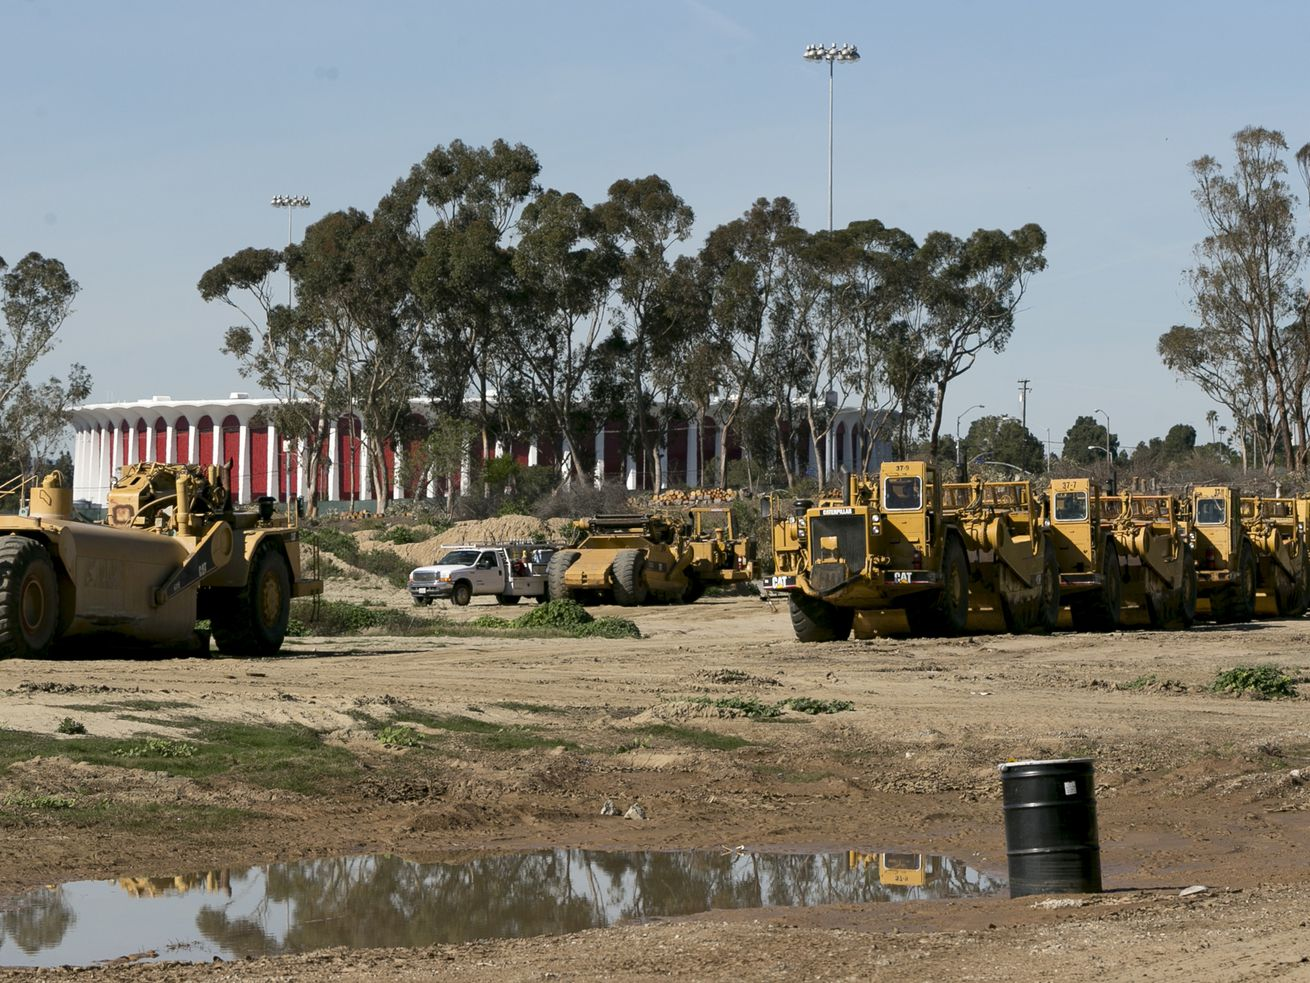 Construction at Hollywood Park, near where the Clippers arena would be built.